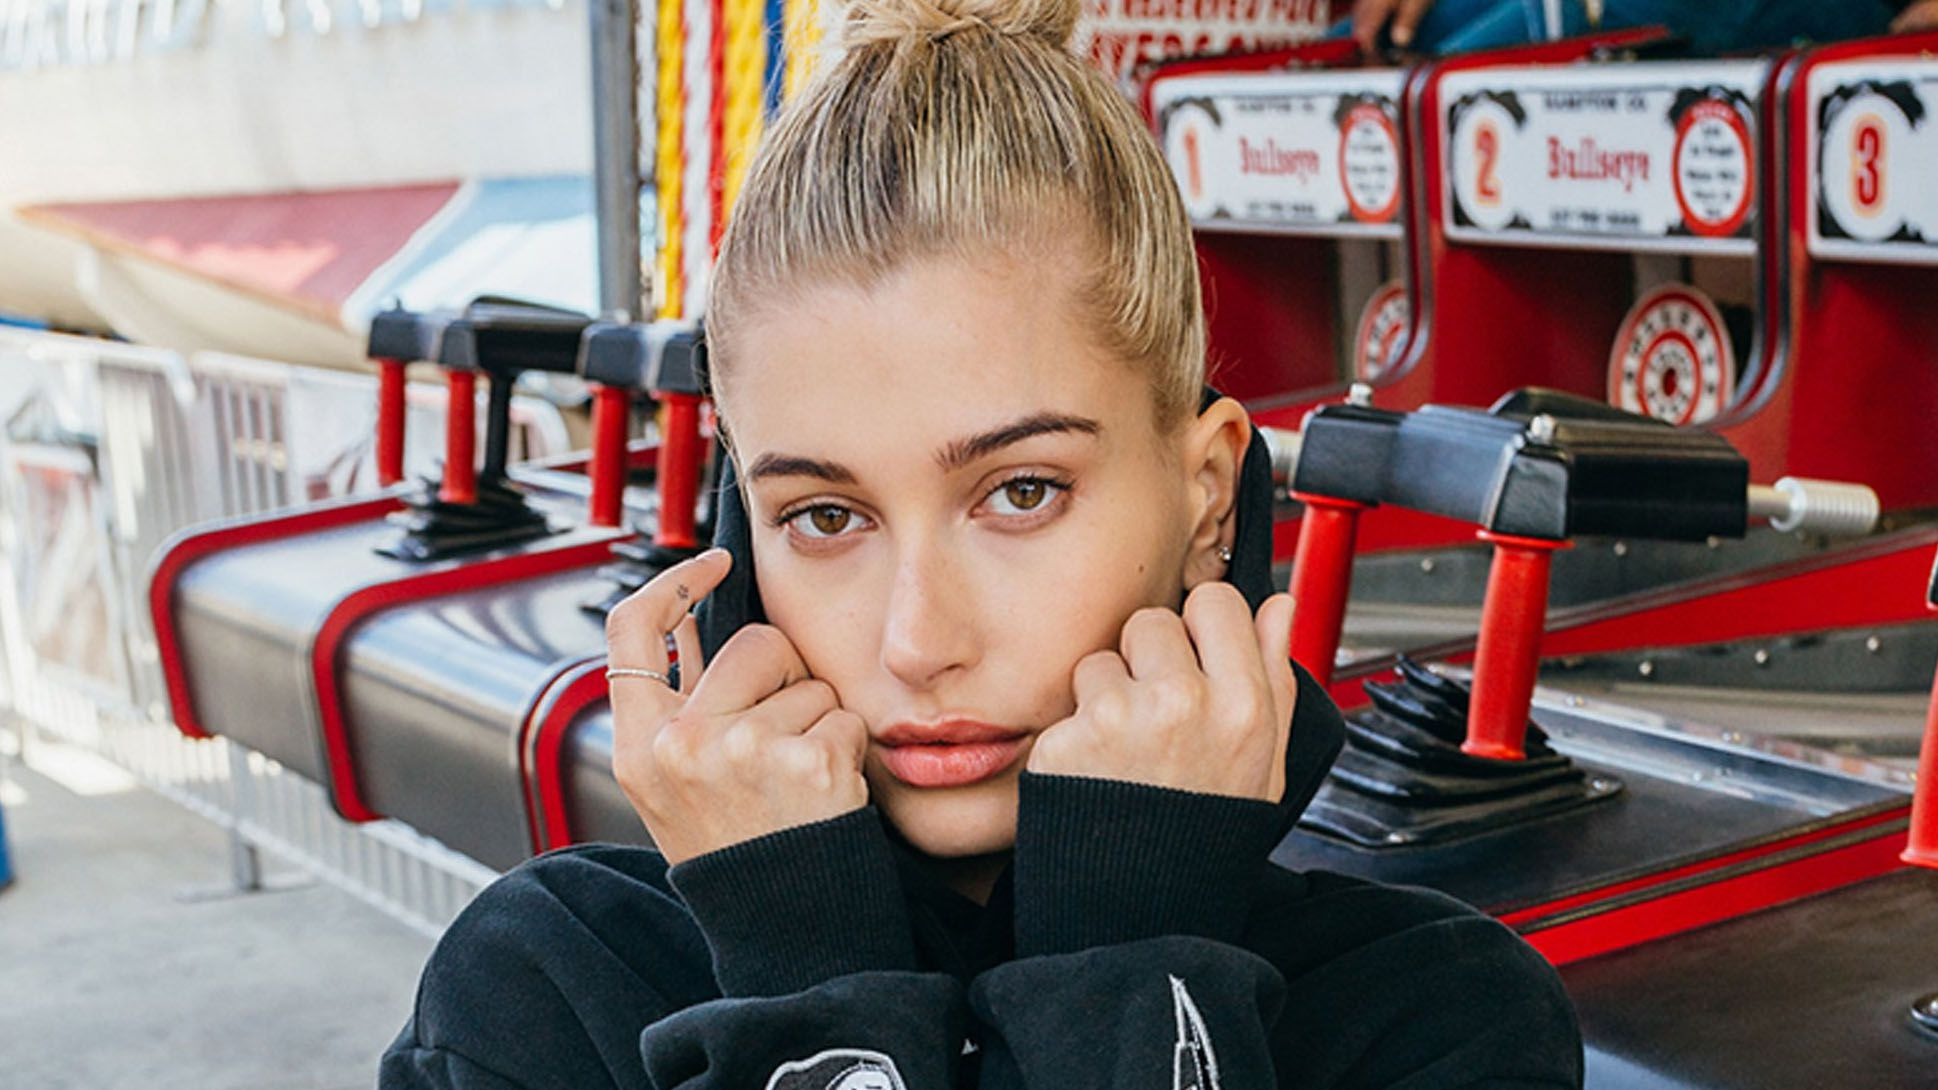 """<p>The movie update of The Mighty Morphin Power Rangers won't be                                                                 released until March but New York label Kith has jumped on the merchandising                                                                 train, enlisting model of the moment and Harper's Bazaar Australia cover star<a href=""""http://honey.nine.com.au/2016/10/10/07/22/hailey-baldwin-harpers-bazaar-cover"""" target=""""_blank"""">Hailey Baldwin</a> to front a collection                                                                 inspired by the superheros. </p>                                                                 <p><br />                                                                 The hoodie-heavy range from Kith founder Ronnie Fieg                                                                 comes in black, red, yellow and pink with embroidered helmets and lightning bolts                                                                 adding Power Ranger appeal.</p>                                                                 <p><br />                                                                 """"Part of our brand image and part of who we                                                                 are as a brand goes back to the most influential years of my life, which were                                                                 the '90s, growing up,"""" Fieg told US <em>Vogue</em>. """"It's important for us to pay homage                                                                 to any of the things that made us who we are today.""""</p>                                                                 <p><br />                                                                 Kith's fixation                                                                 with childhood cartoon shows was revealed last month on the catwalk at New York                                                                 Fashion Week with """